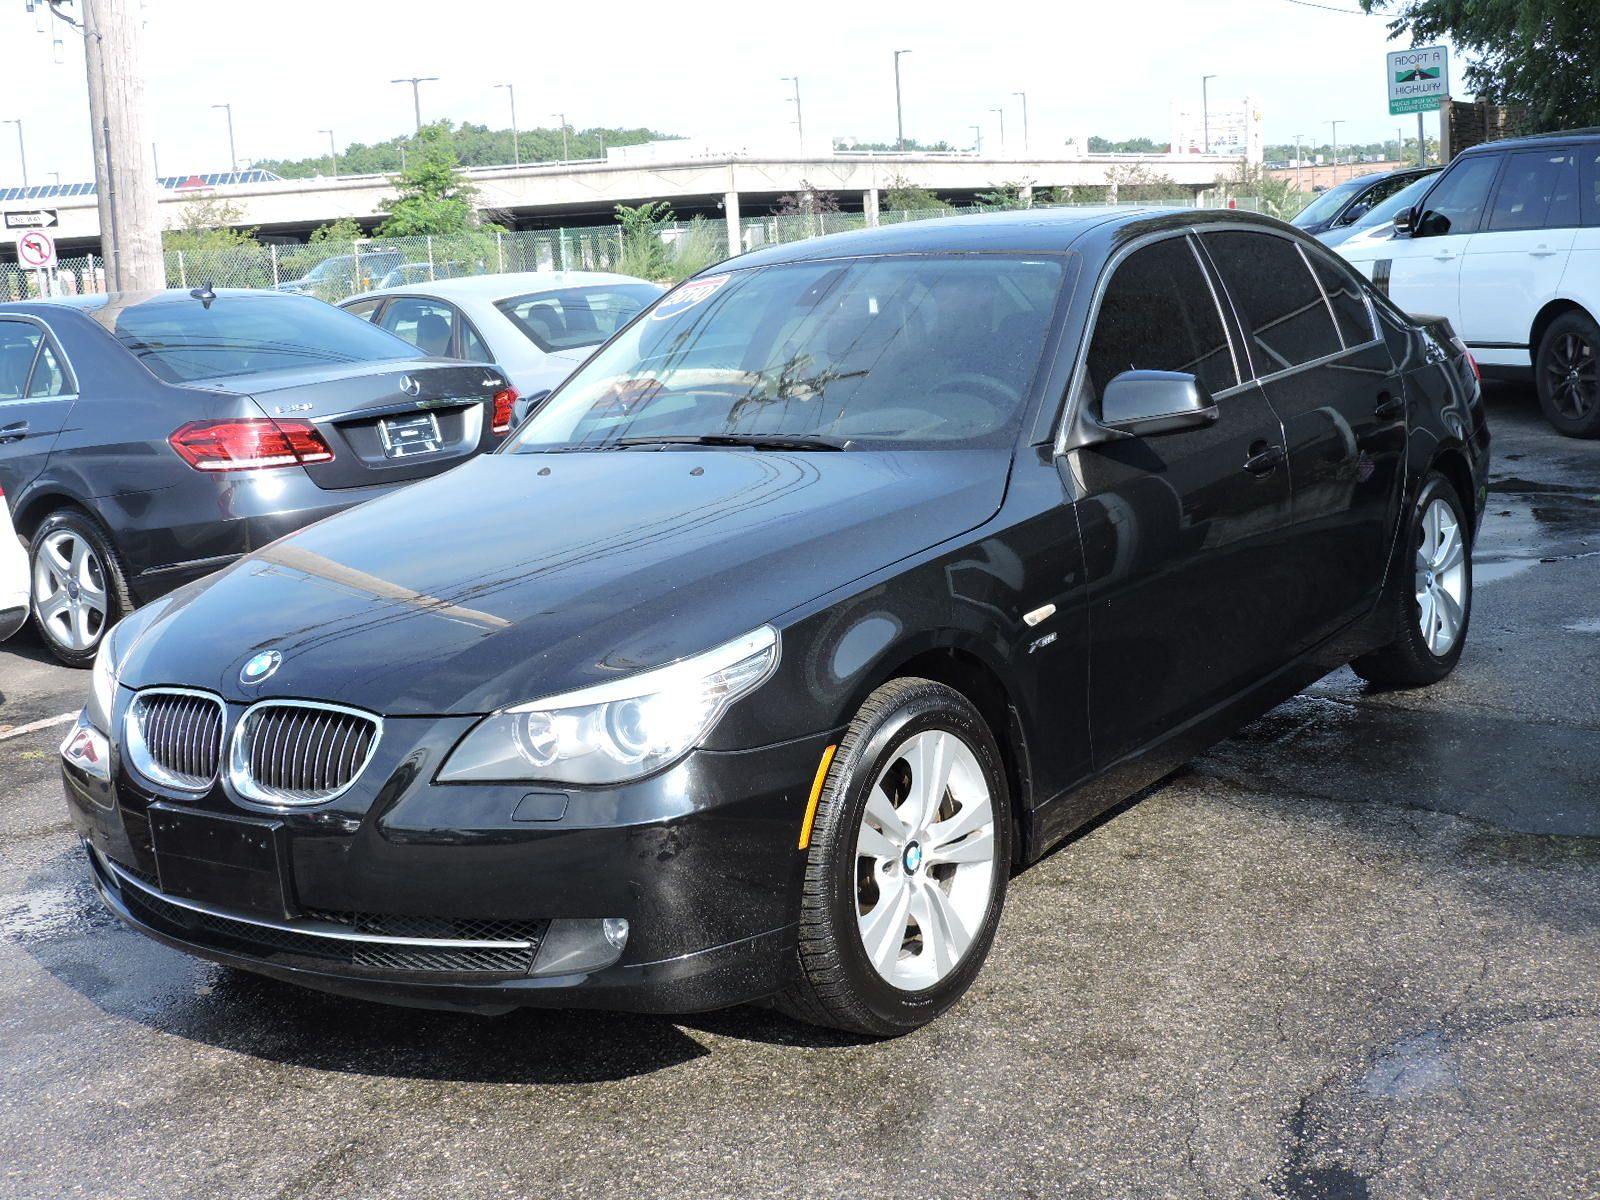 2010 BMW 5 Series 528xi xDrive AWD